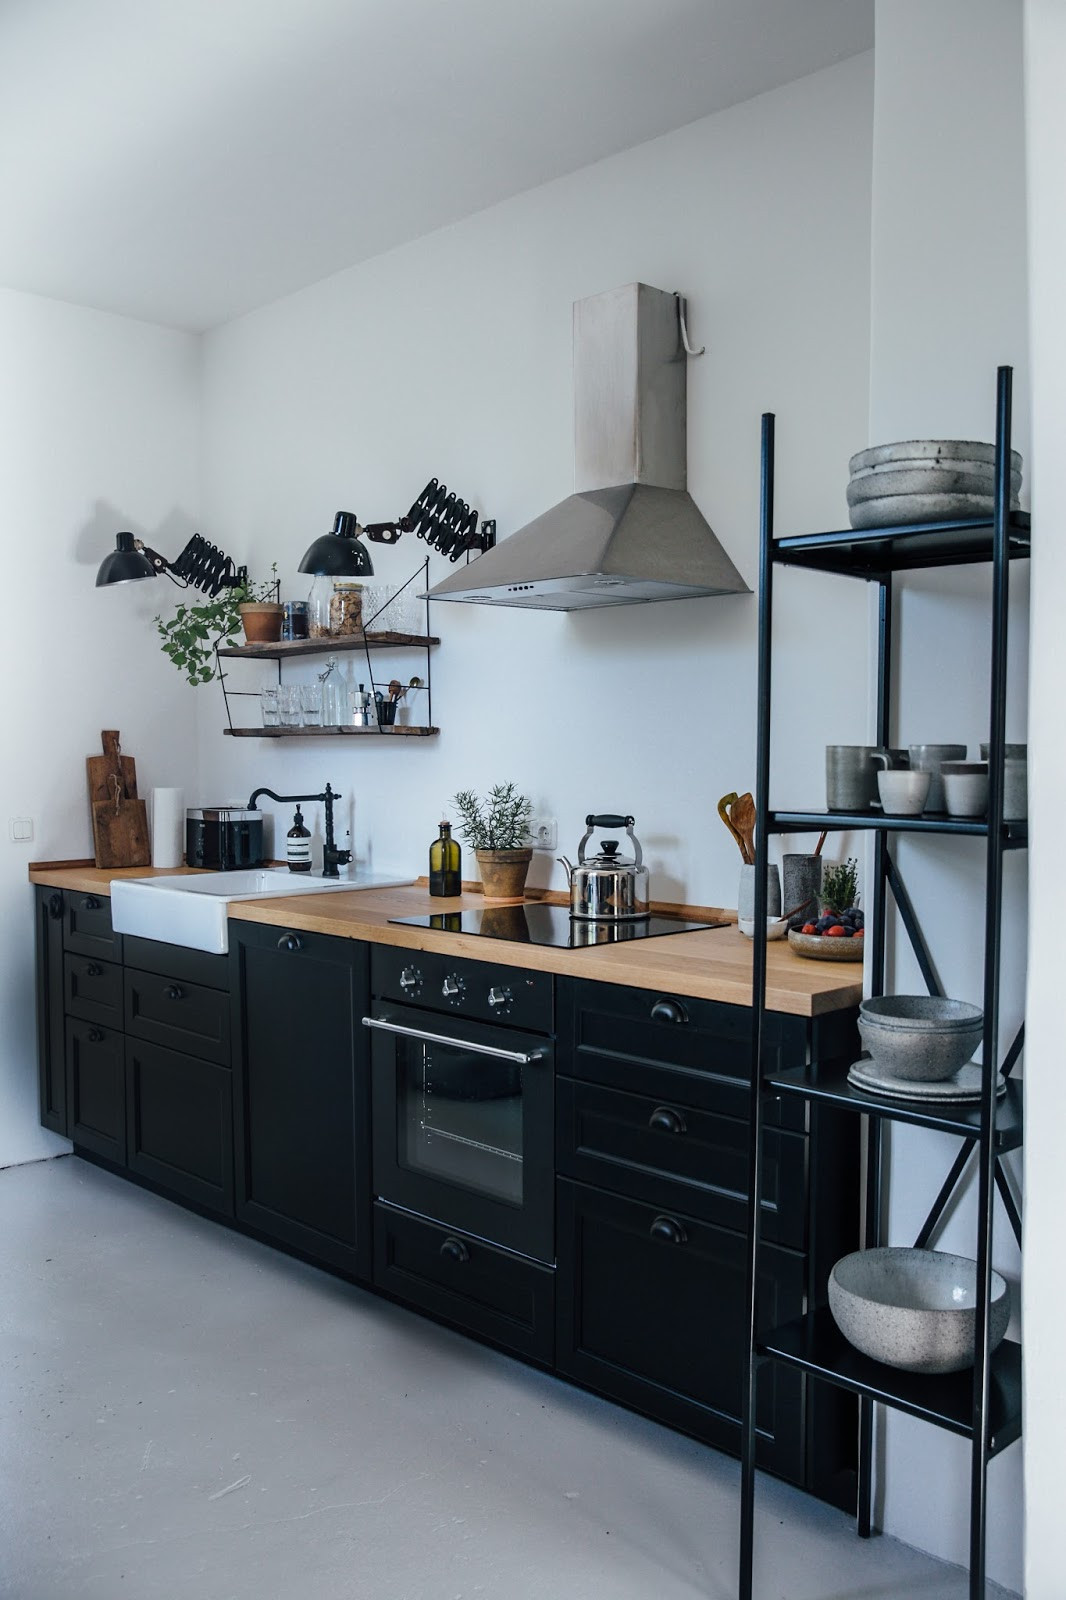 Best ideas about DIY Ikea Kitchen . Save or Pin Kitchen of the Week A DIY Ikea Country Kitchen for Two Now.